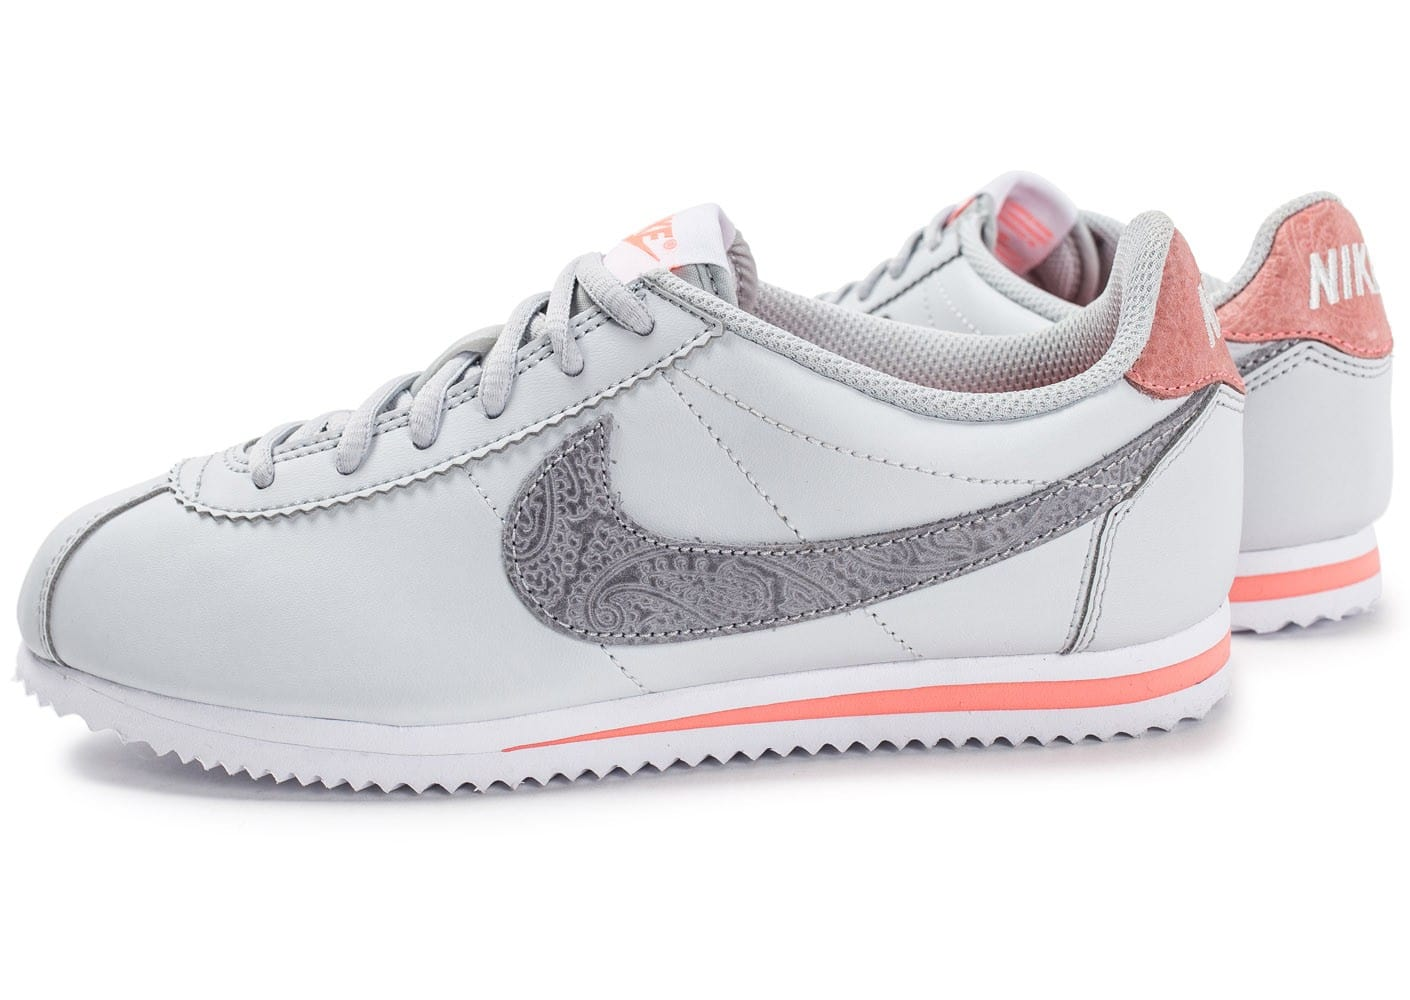 nike cortez se junior grise chaussures toutes les baskets sold es chausport. Black Bedroom Furniture Sets. Home Design Ideas